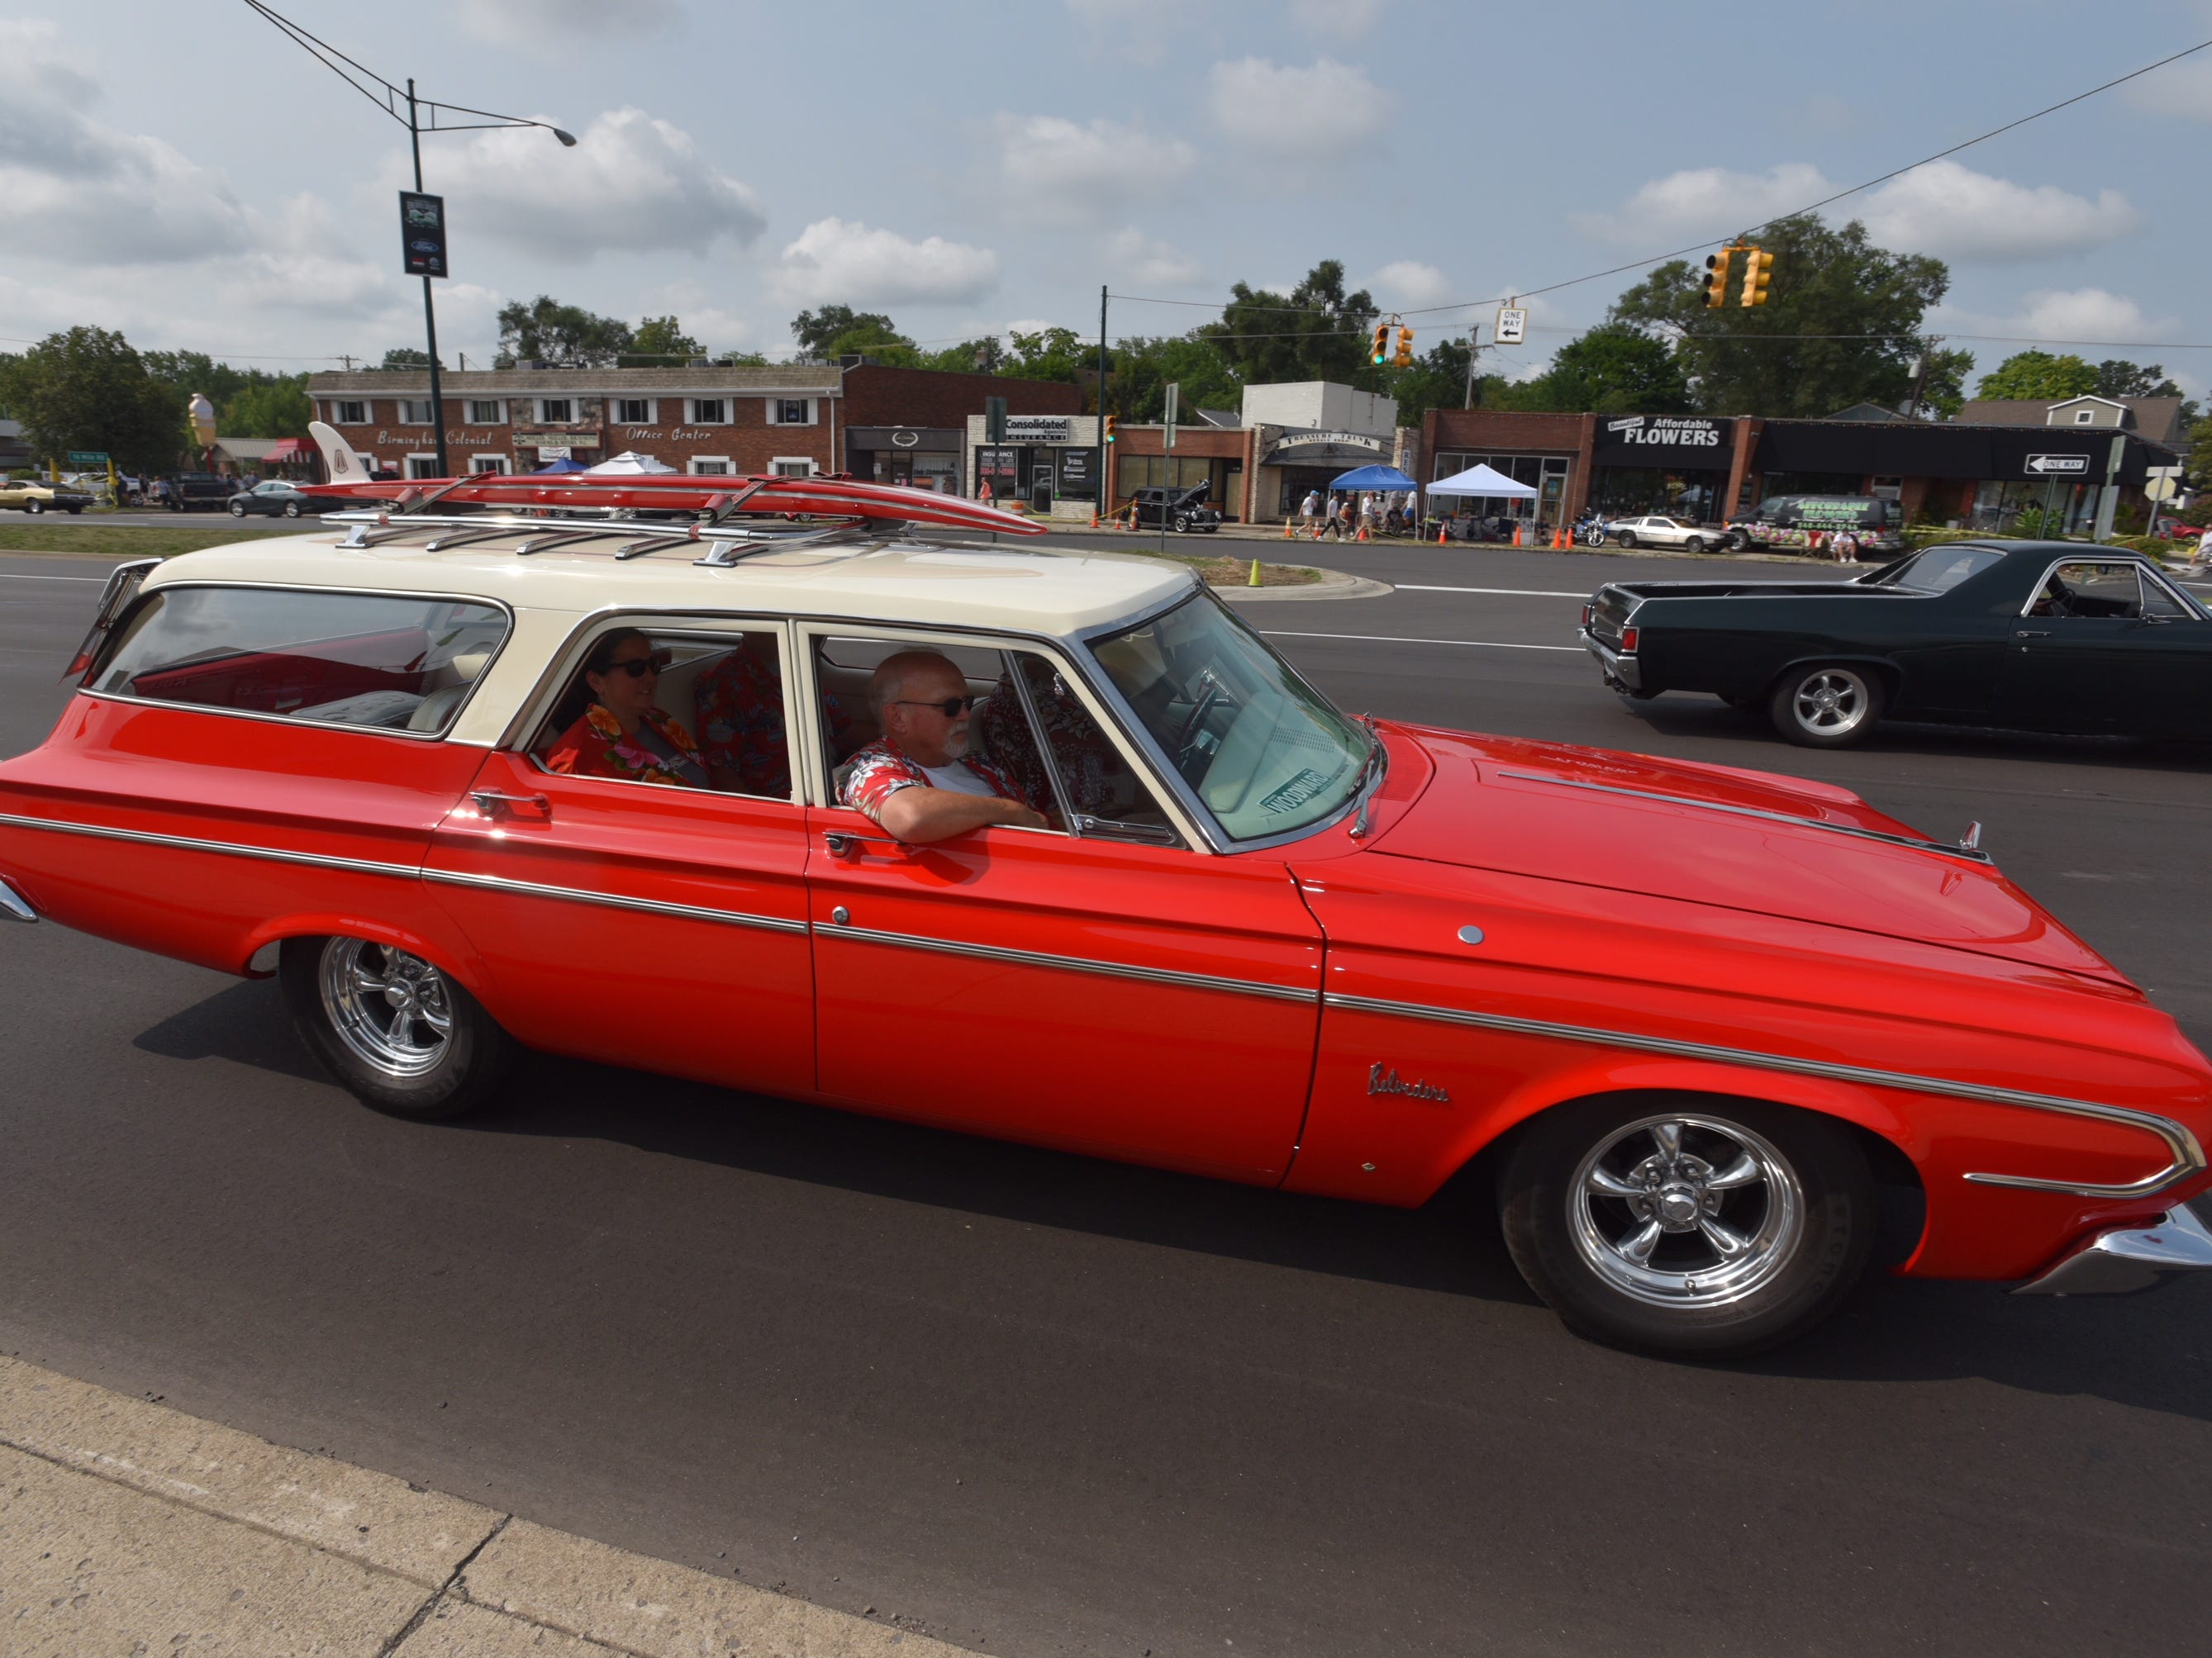 A surfboard is displayed on top of this 1964 Plymouth Belvedere wagon Saturday morning at the Woodward Dream Cruise.